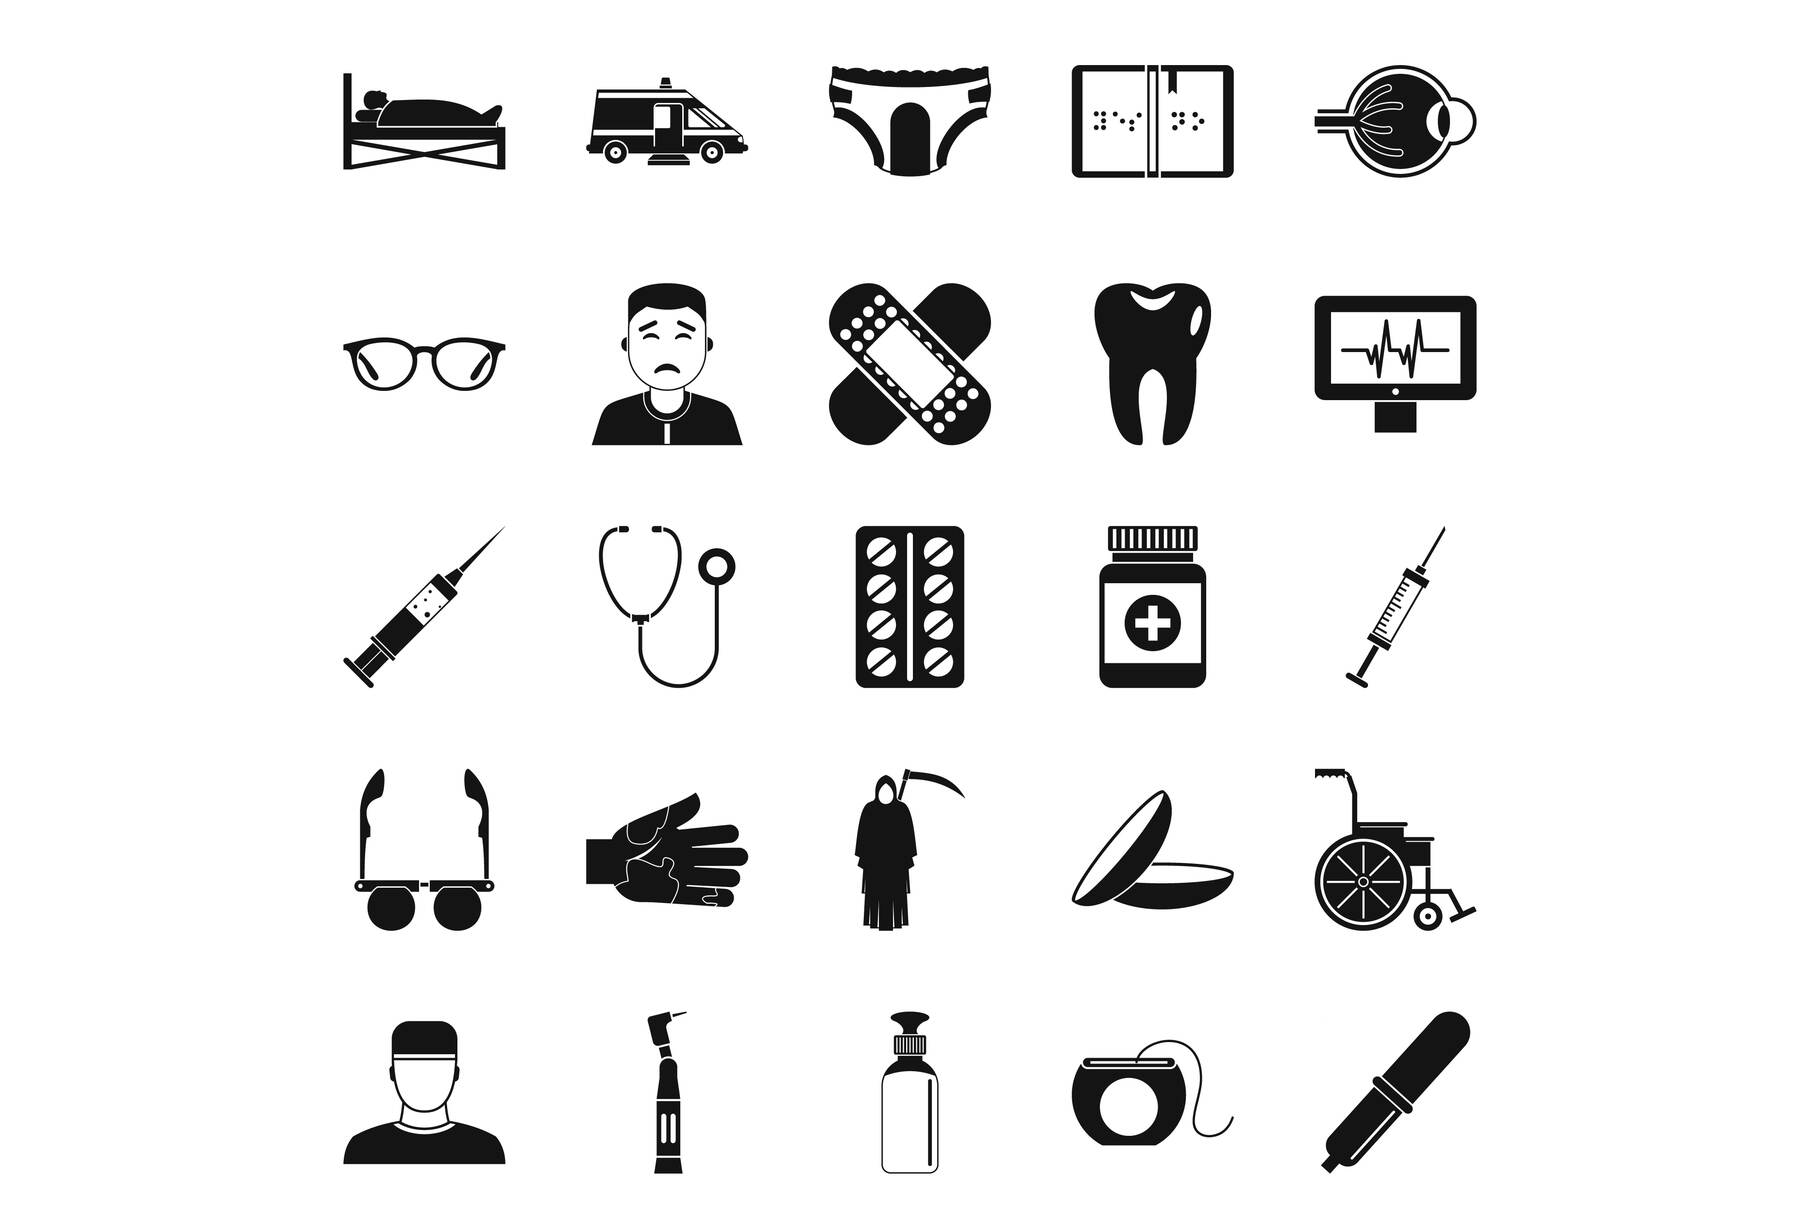 Care of relatives icons set, simple style example image 1